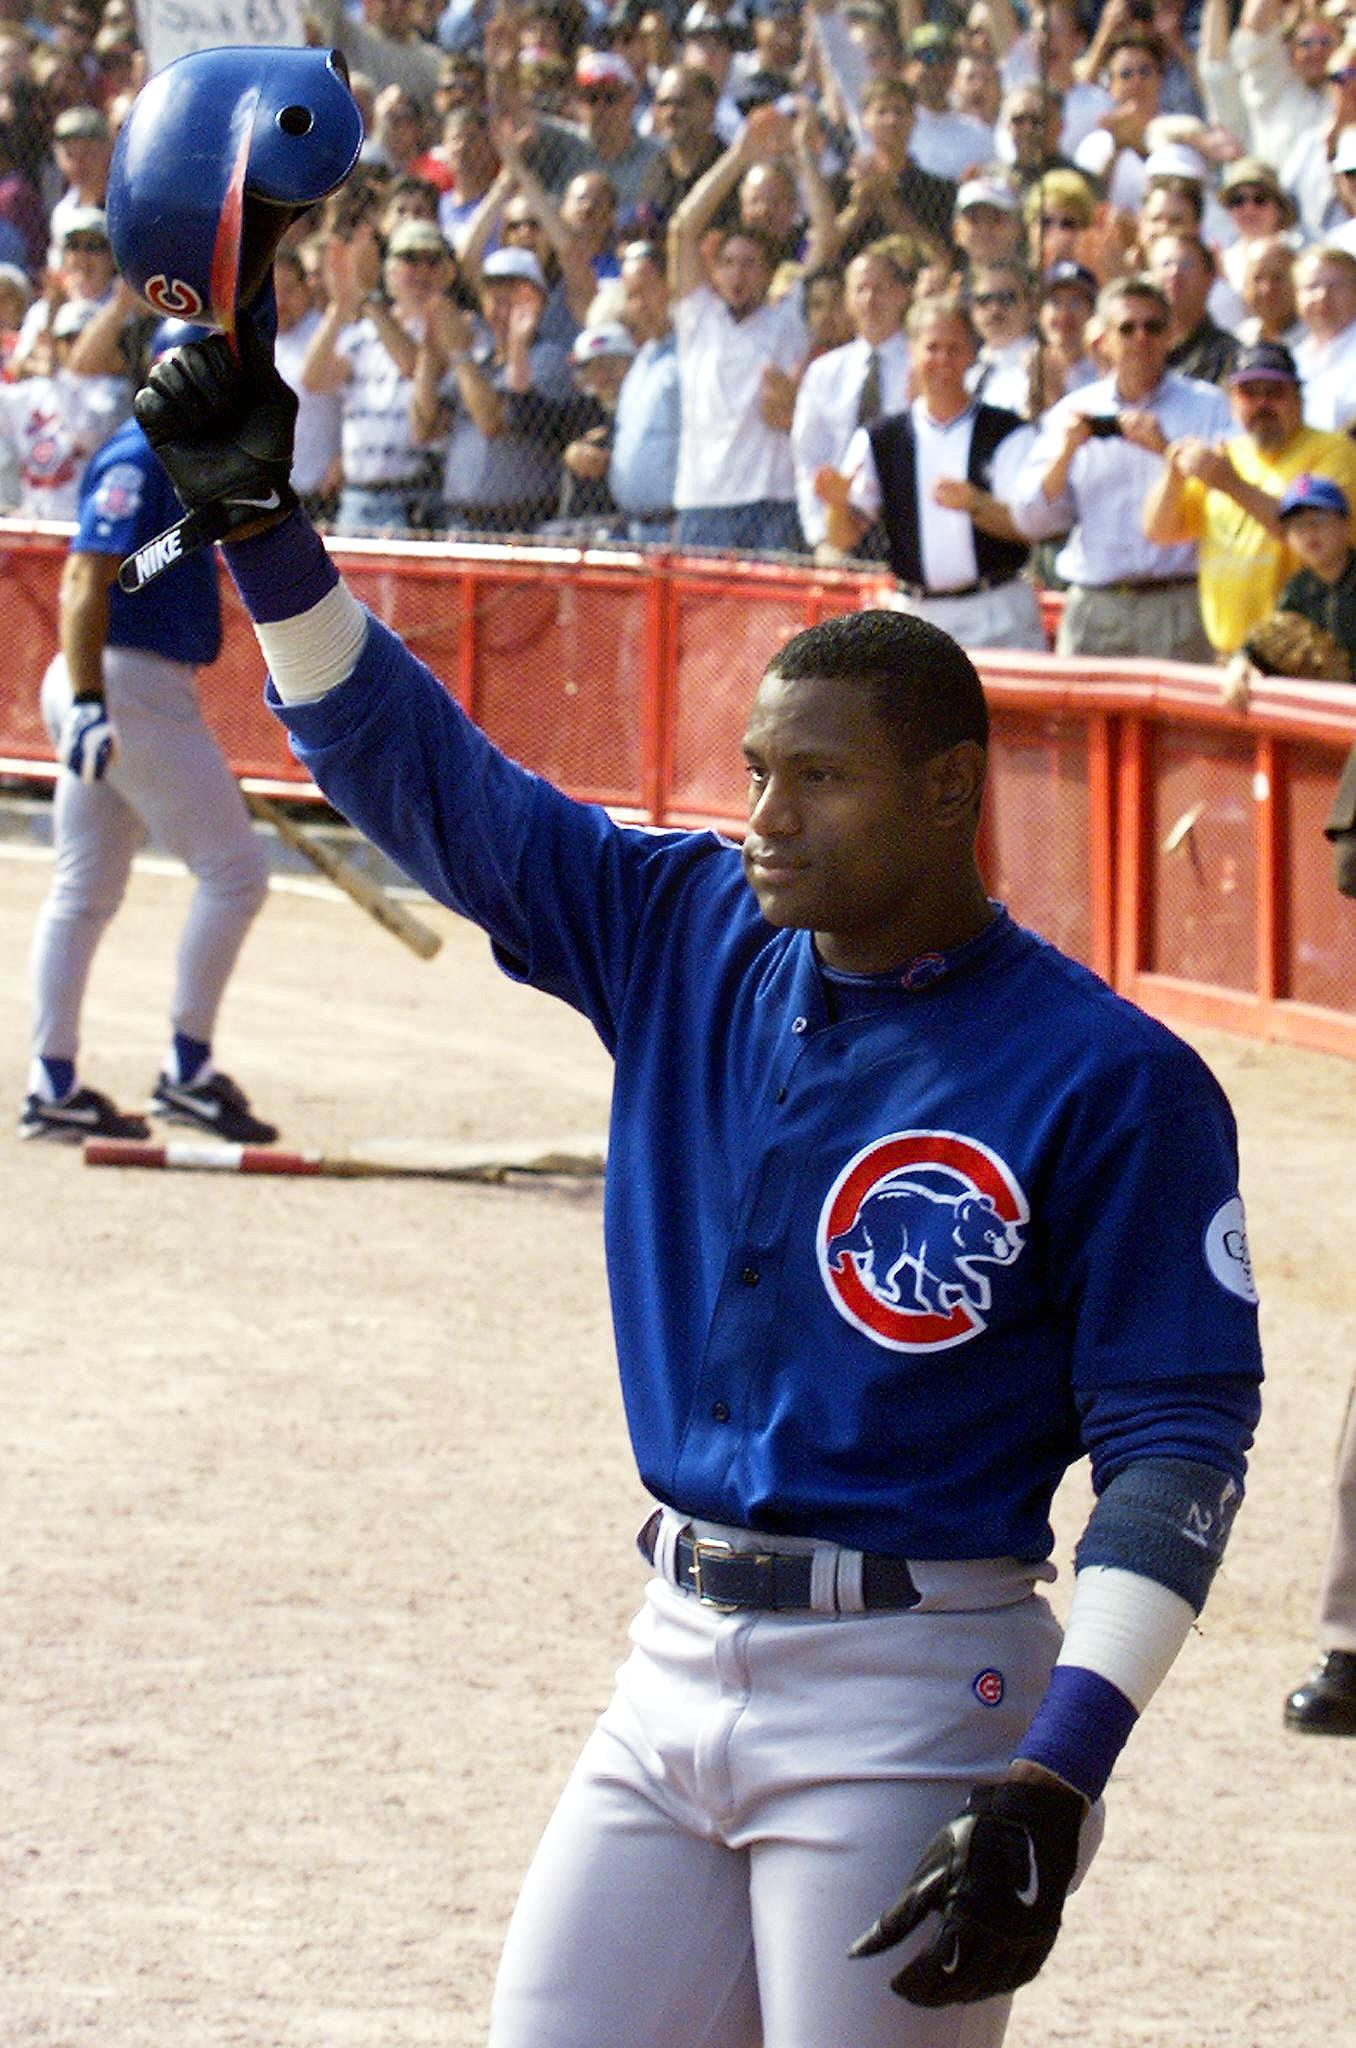 Sammy Sosa of the Chicago Cubs waves to the crowd